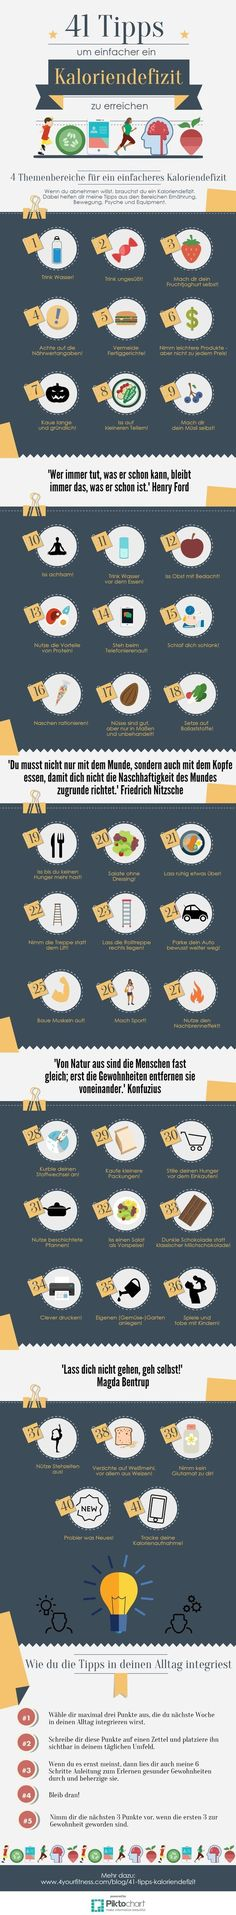 Die Infografik zur ultimativen Liste mit 41 Tipps, die dir dabei helfen, leichte… The infographic for the ultimate list of 41 tips to help you more easily achieve a calorie deficit. Fitness Workouts, Easy Workouts, Fitness Nutrition, Health Diet, Health And Nutrition, Healthy Tips, How To Stay Healthy, Healthy Food, Calorie Deficit